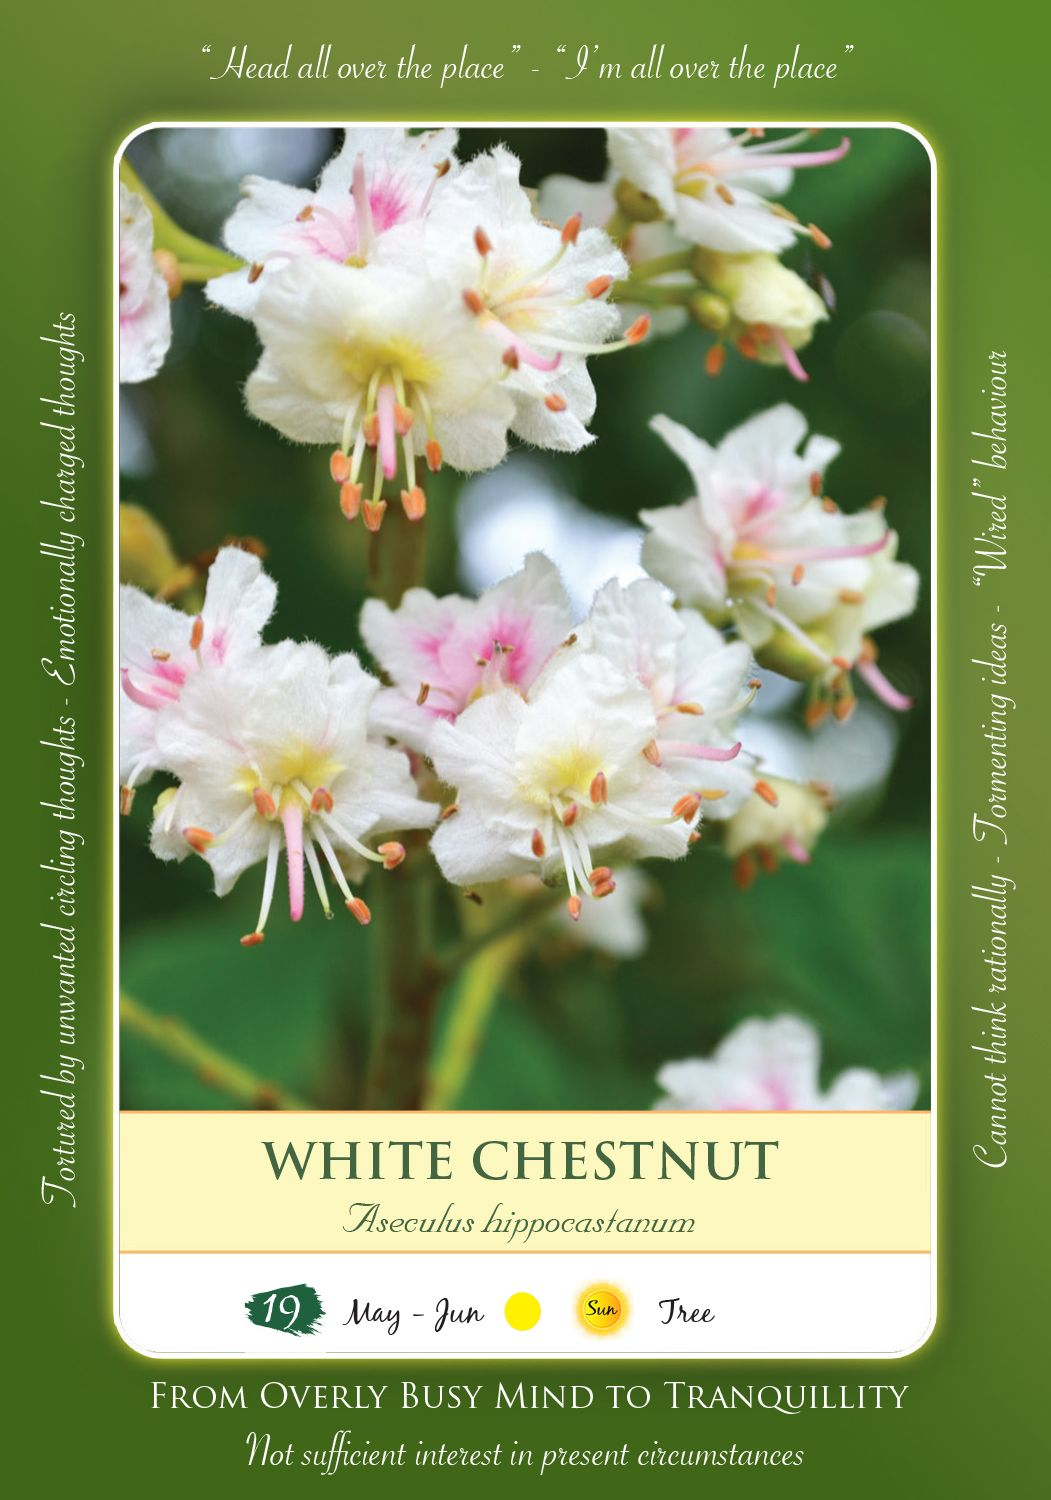 Bach Flower Remedy White Chestnut Toke Bach Flowers Remedies